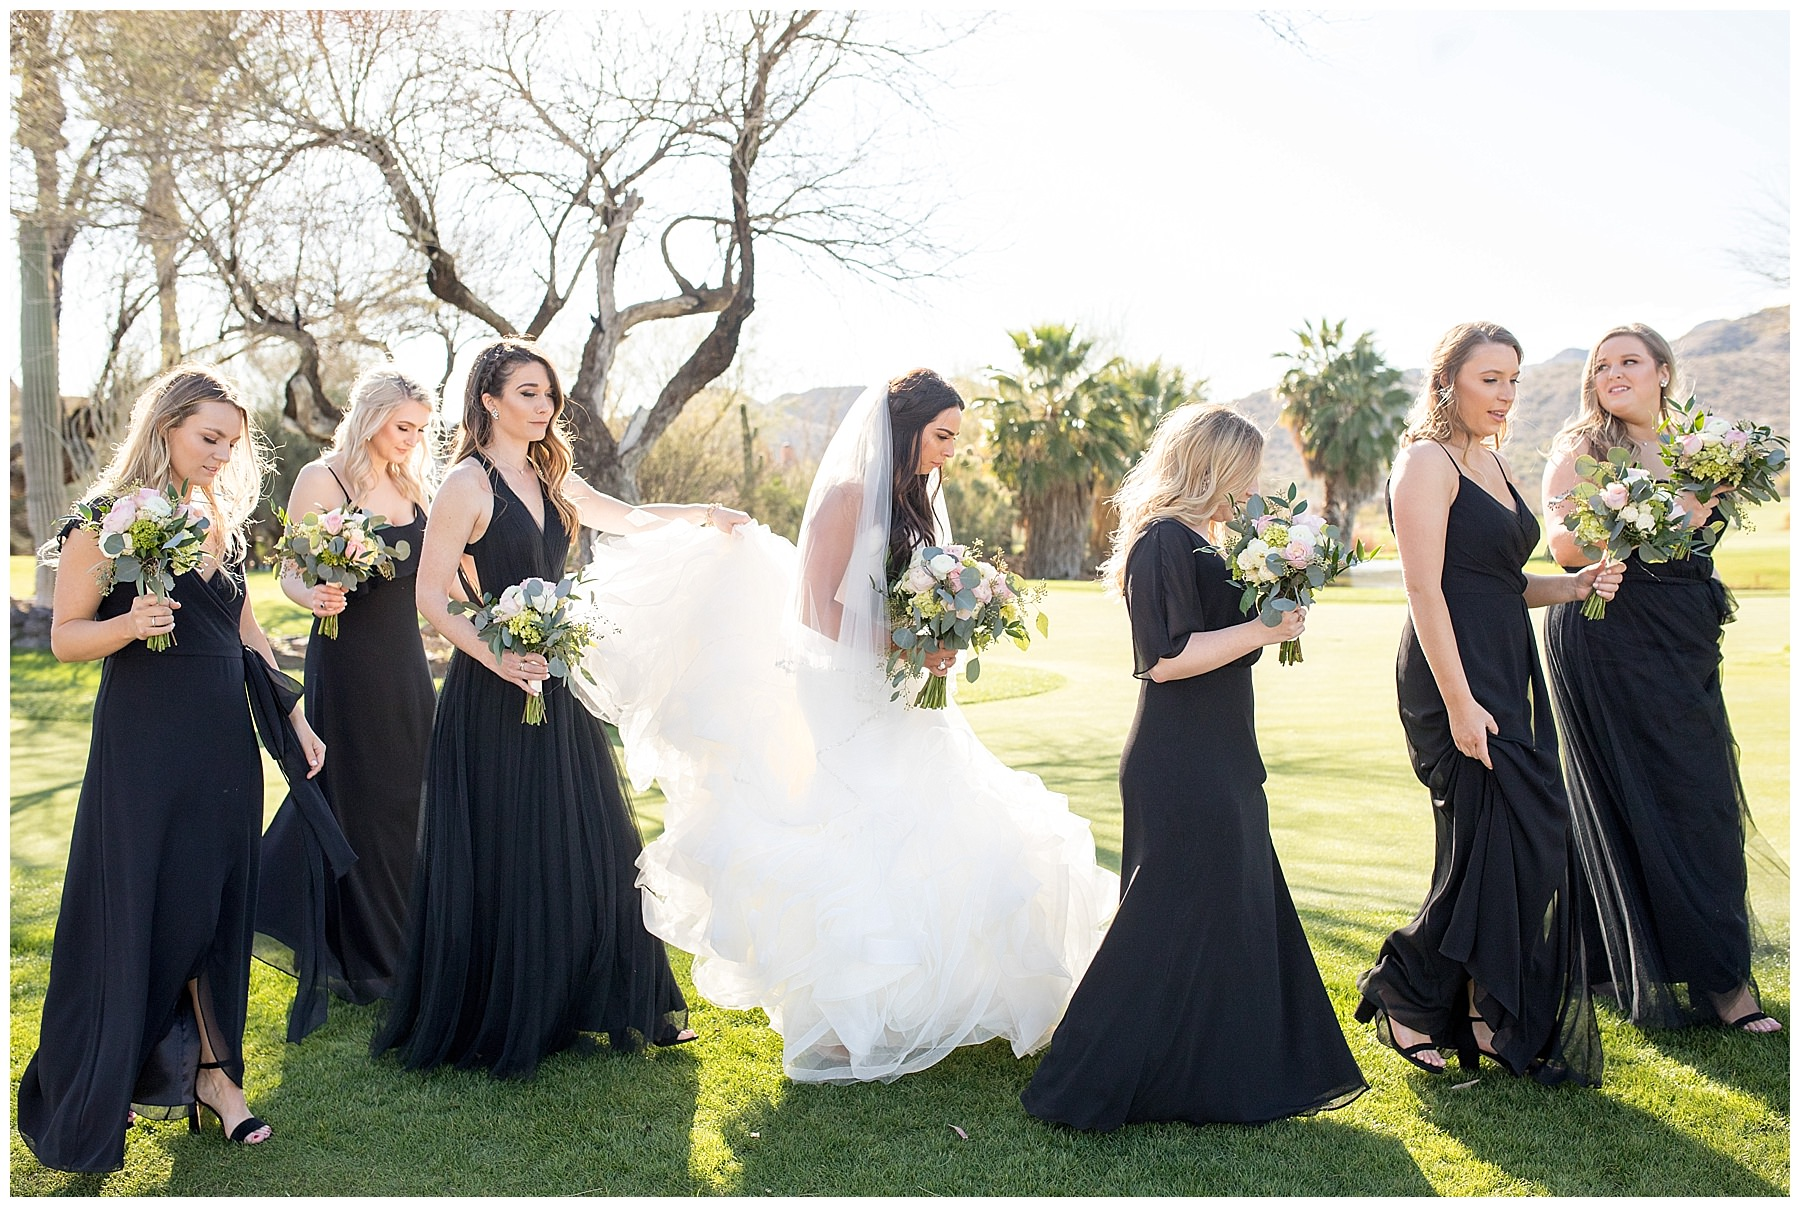 Bridemaids in Black Watters dresses walking with Bride